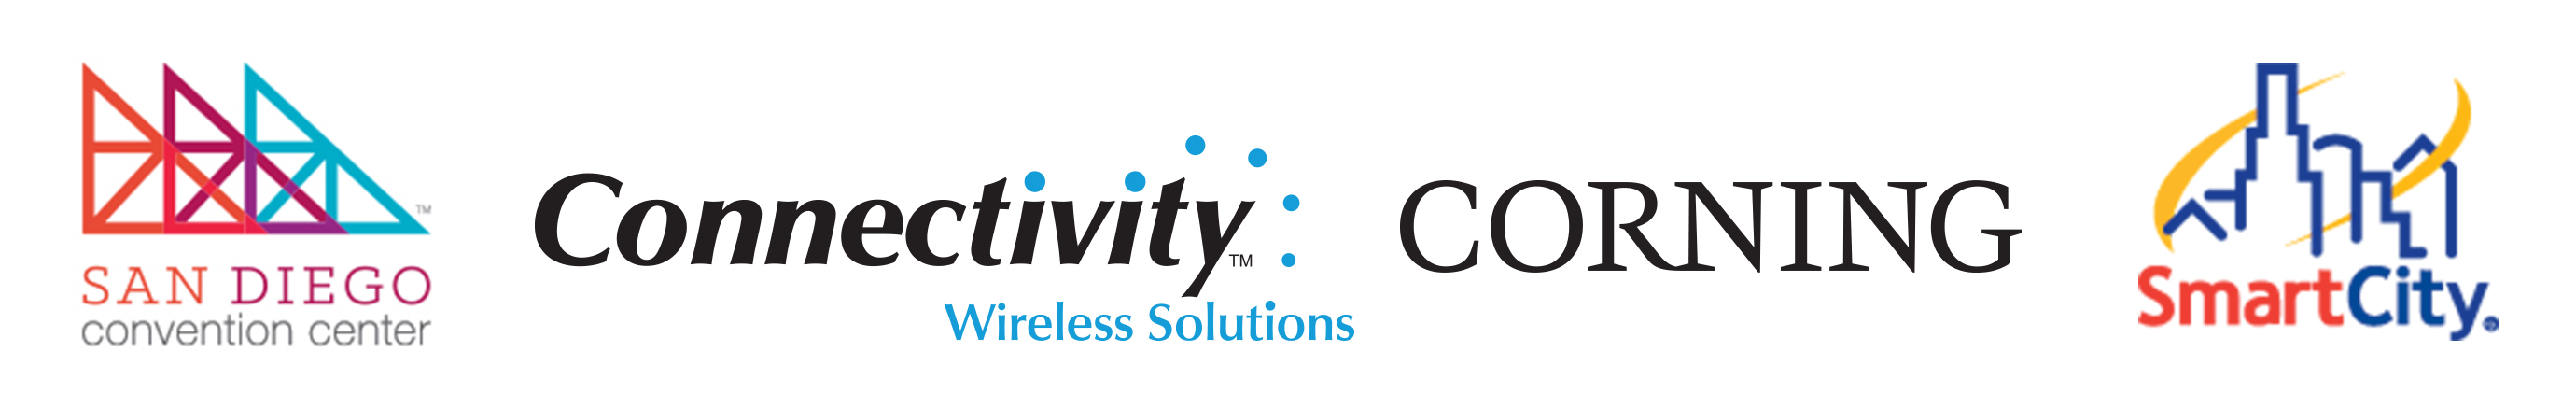 Connectivity Wireless Solutions, Corning Optical Communications, San Diego Convention Center and Smart City